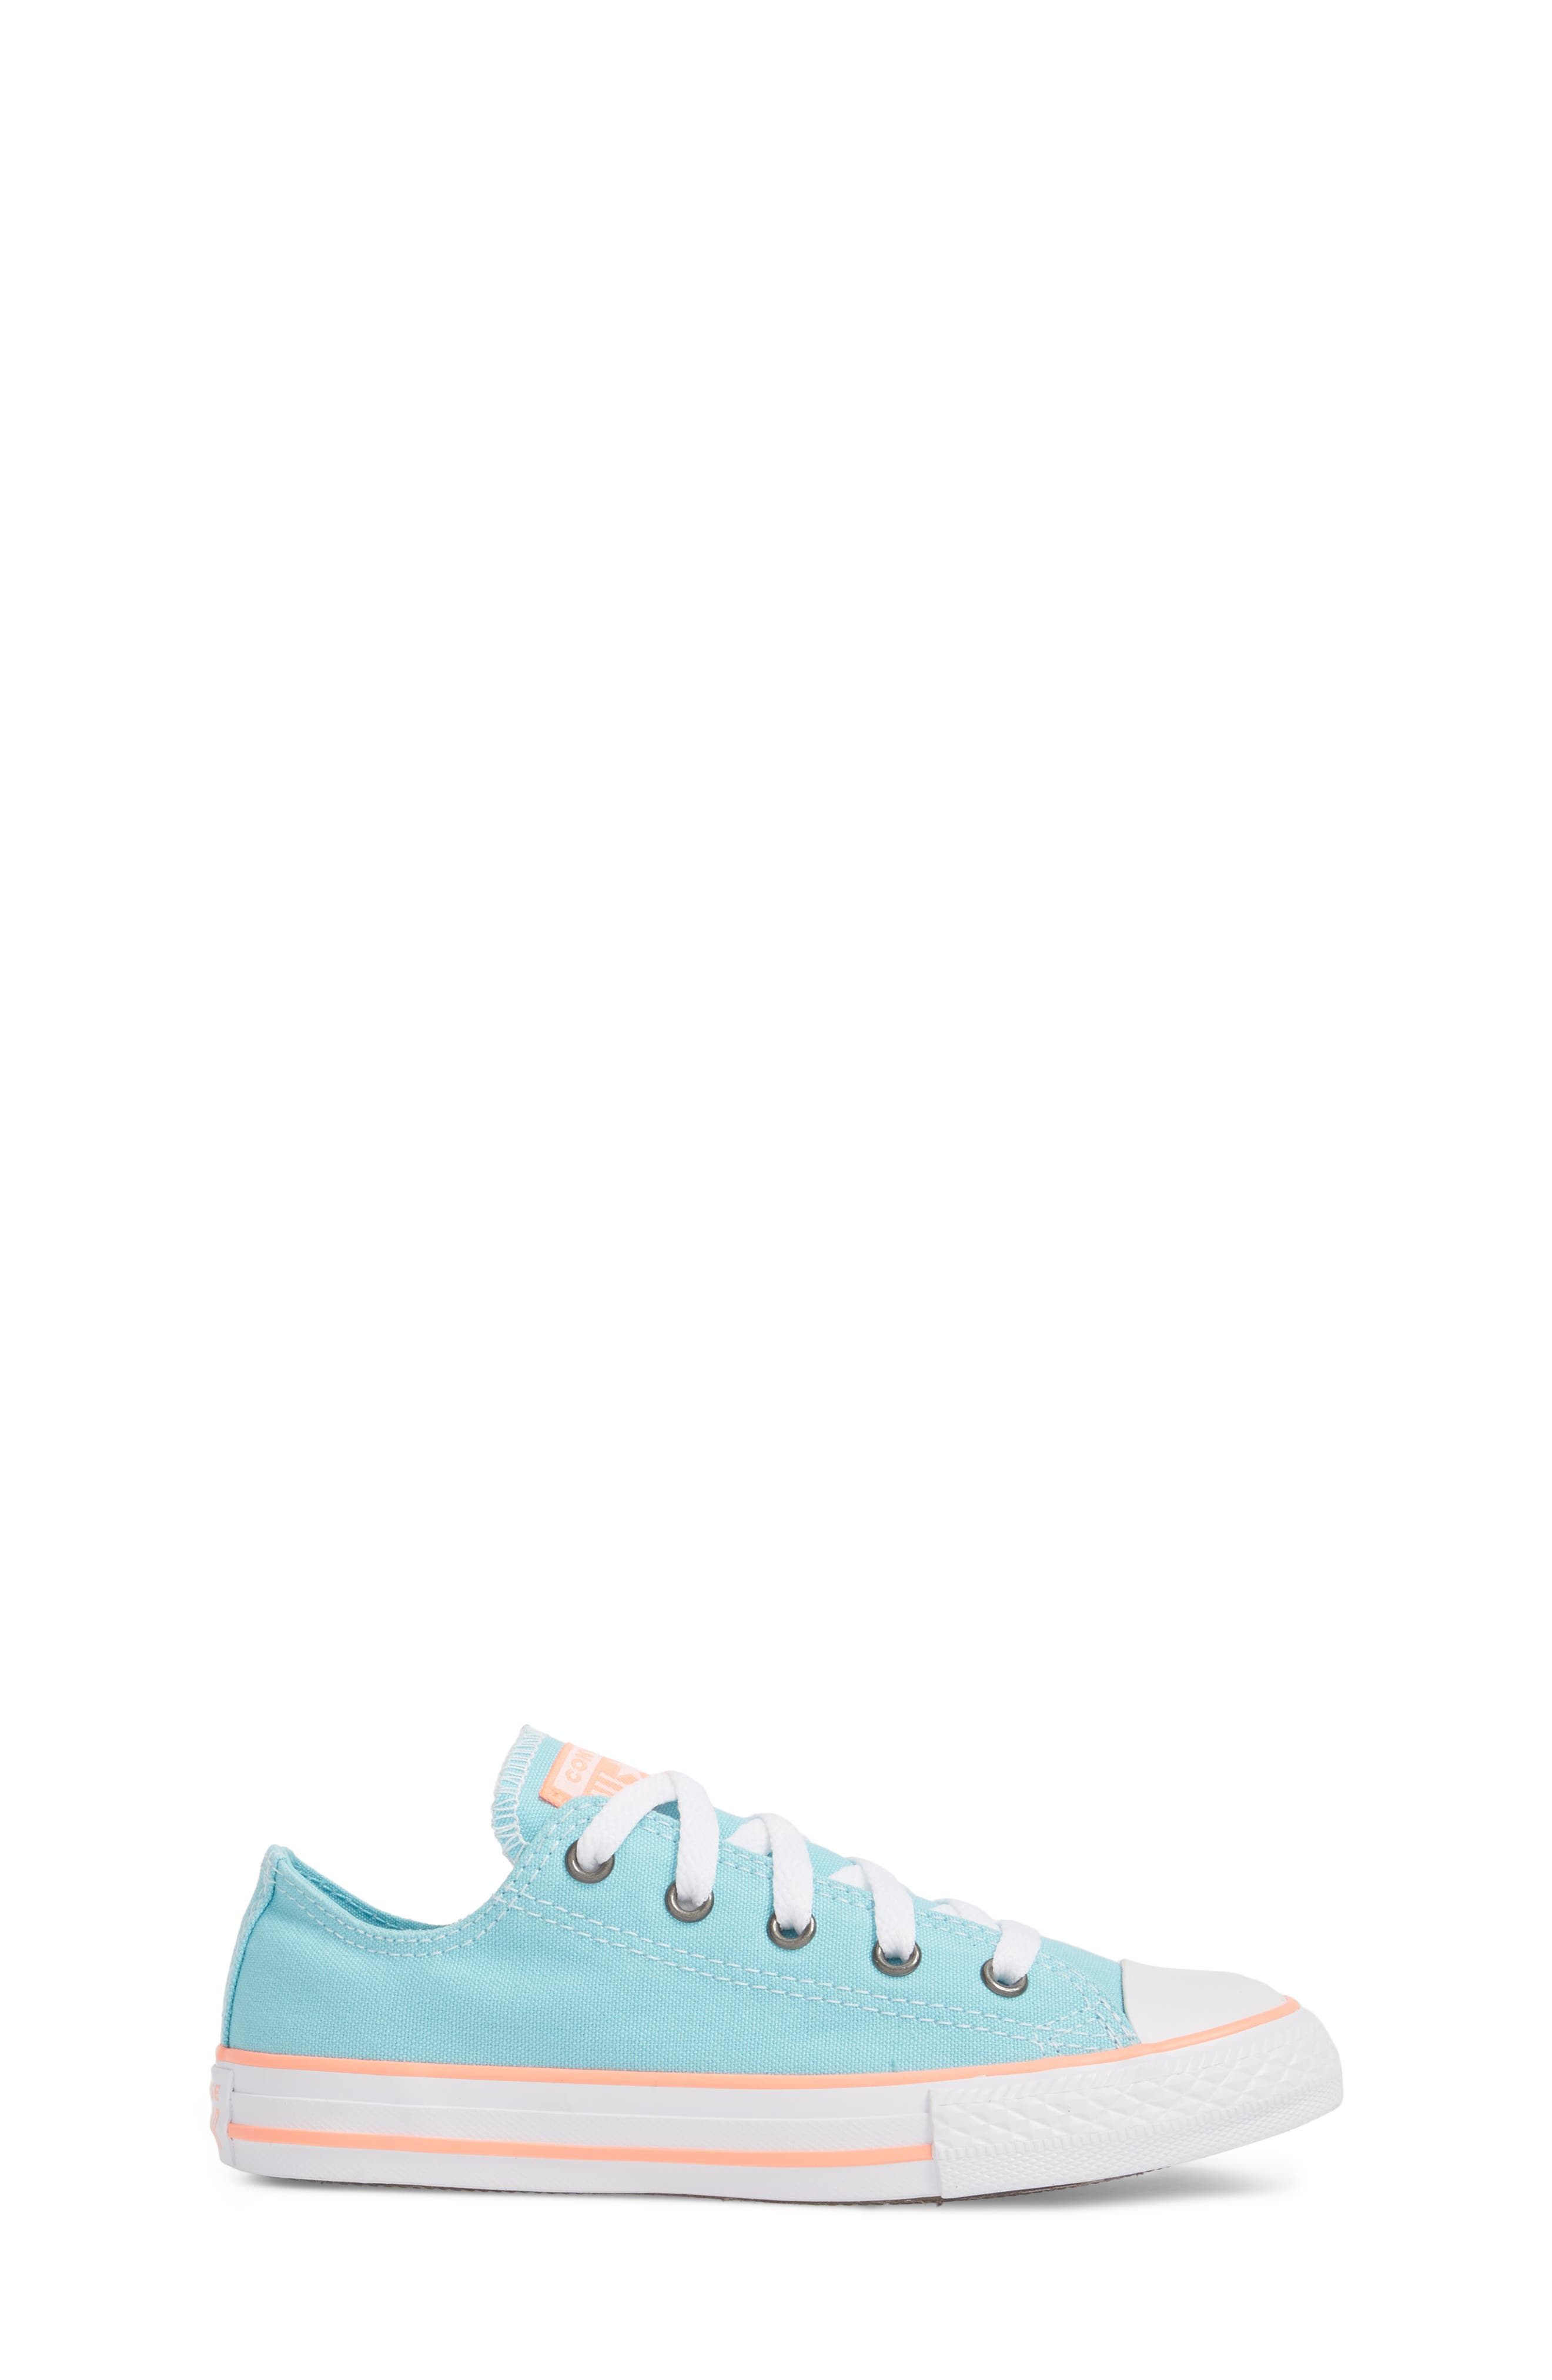 All Star<sup>®</sup> Low Top Sneaker,                             Alternate thumbnail 3, color,                             486